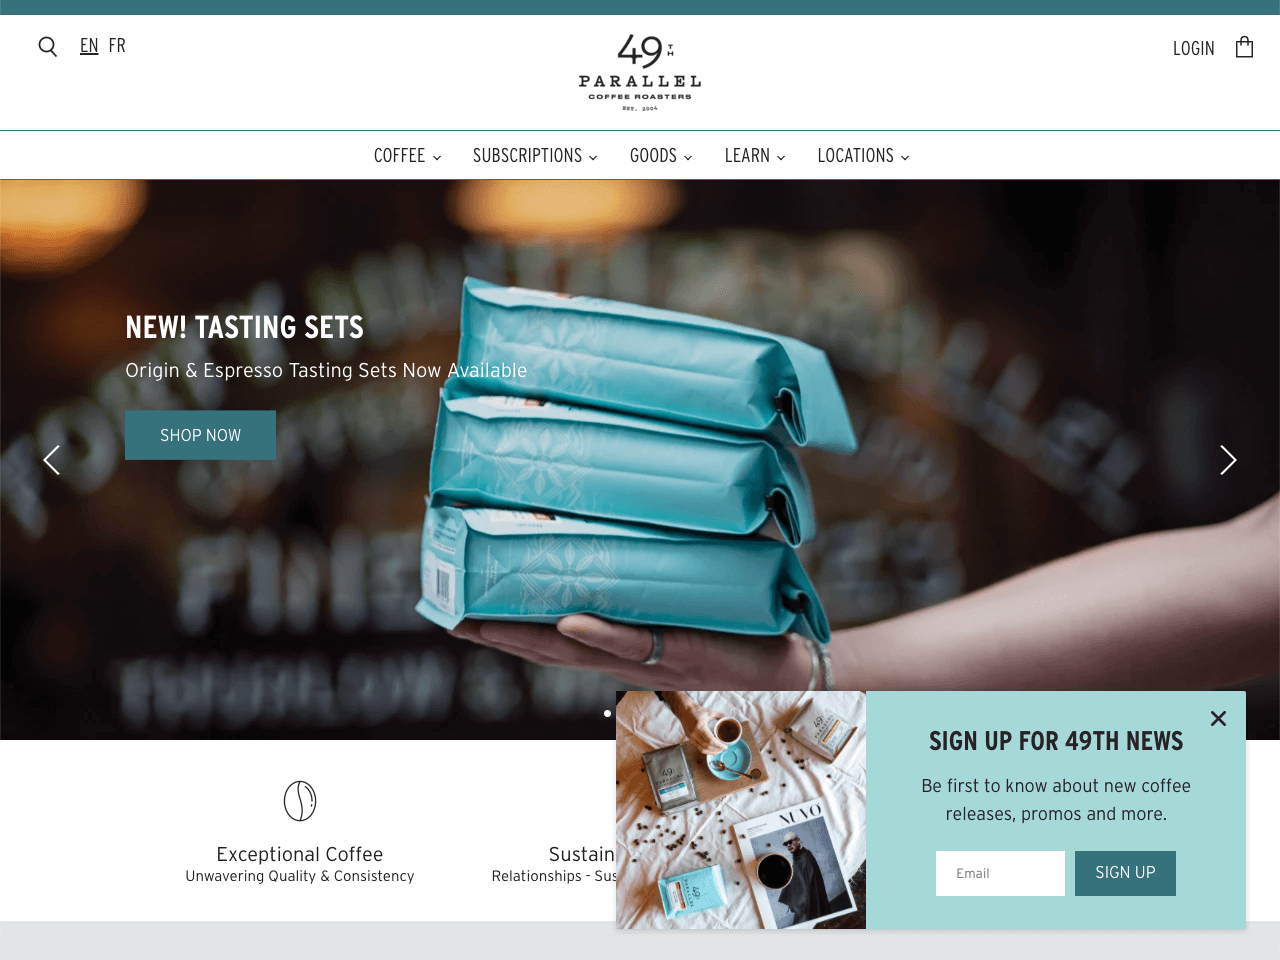 The 49th Parallel online store builds their email list using an email opt-in slide-in